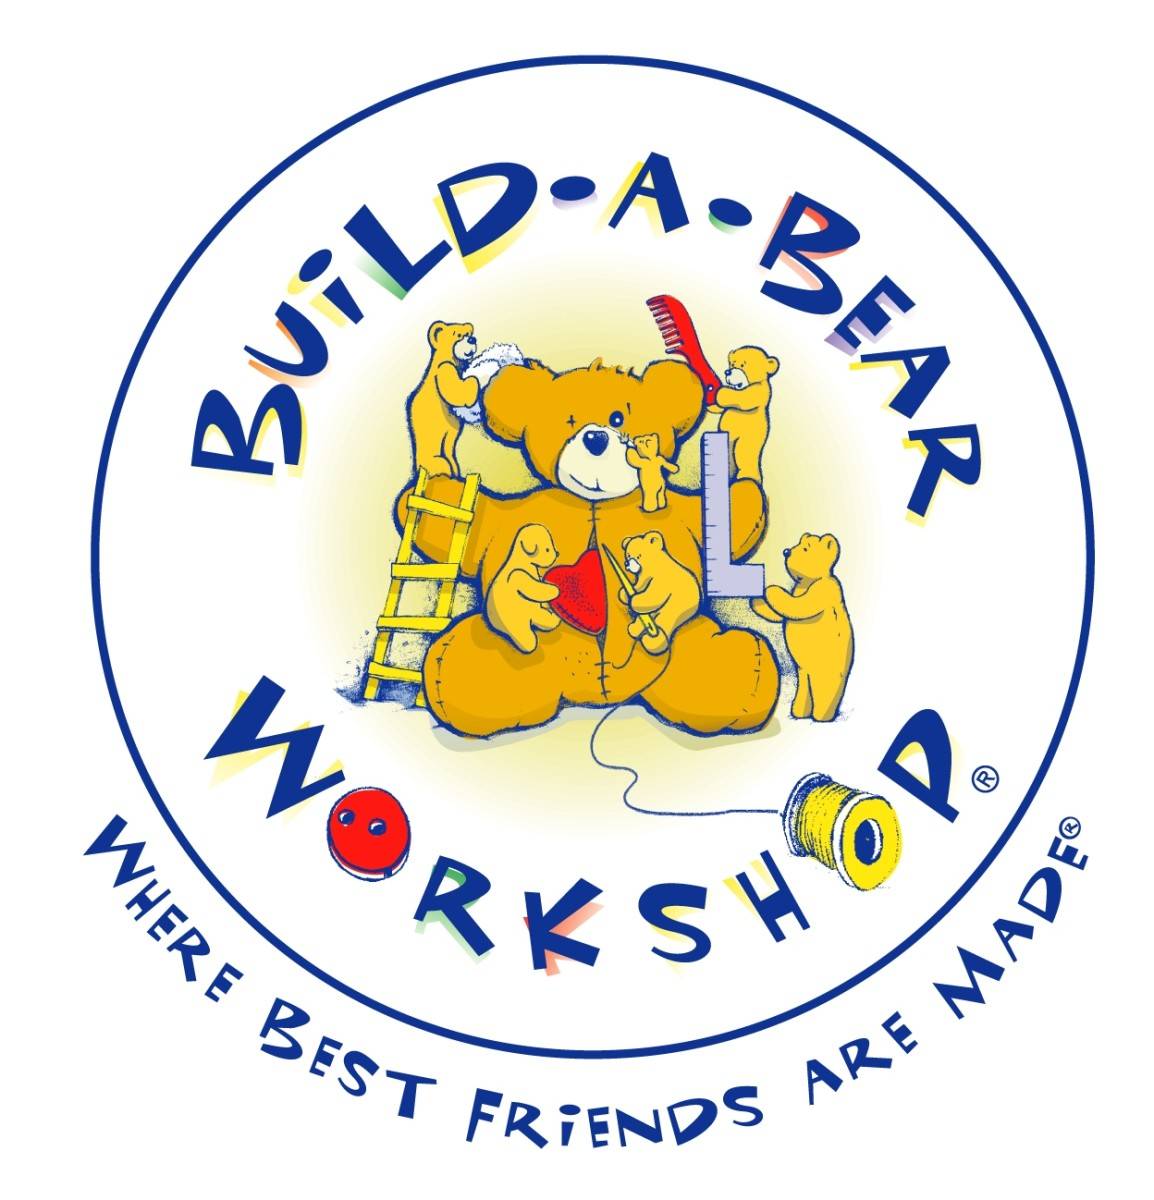 Build-A-Bear Workshop's first logo.